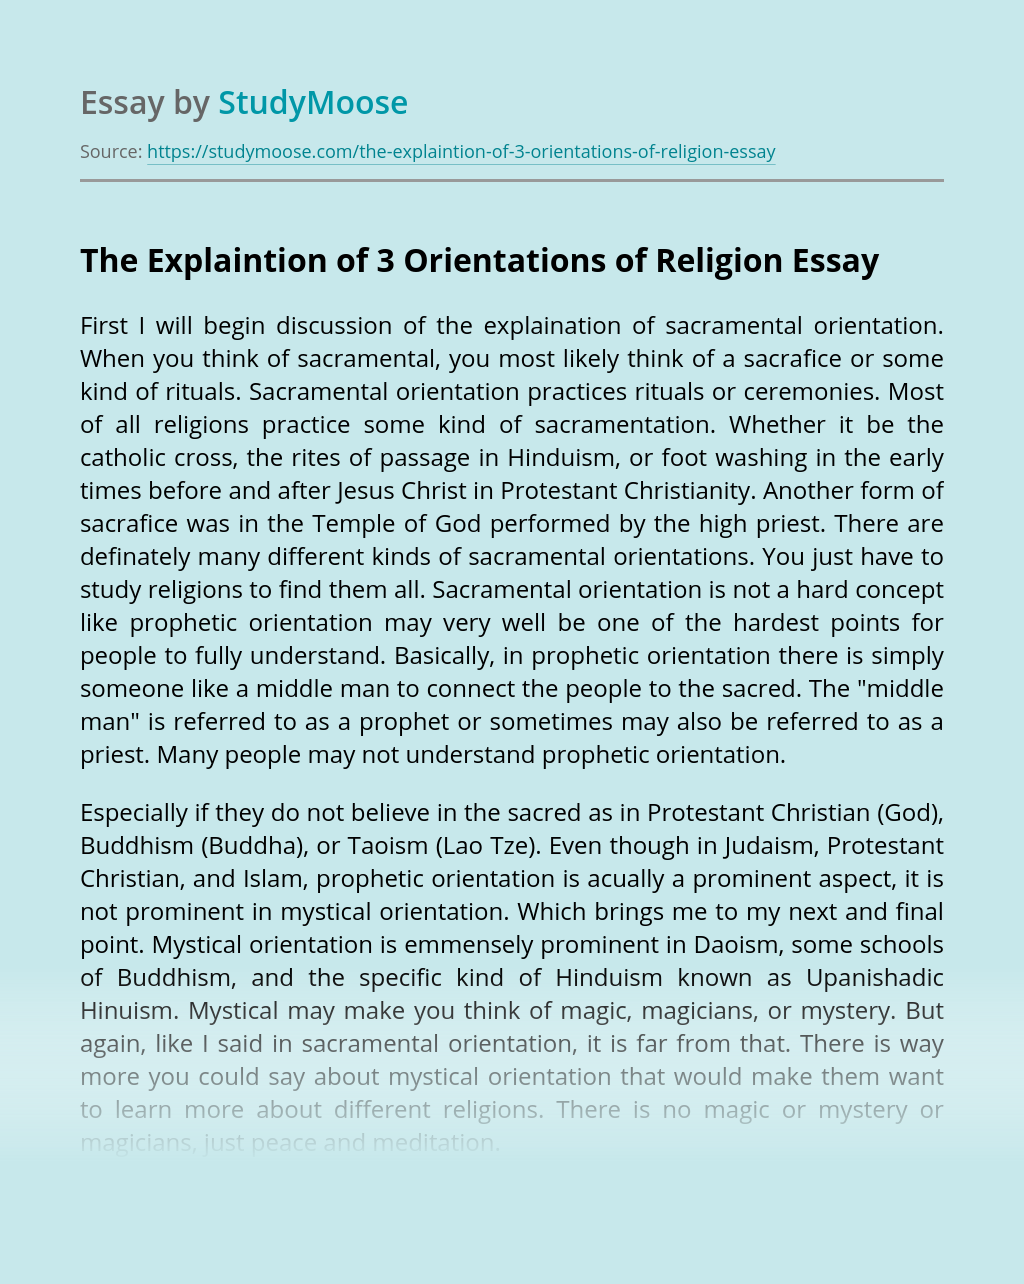 The Explaintion of 3 Orientations of Religion